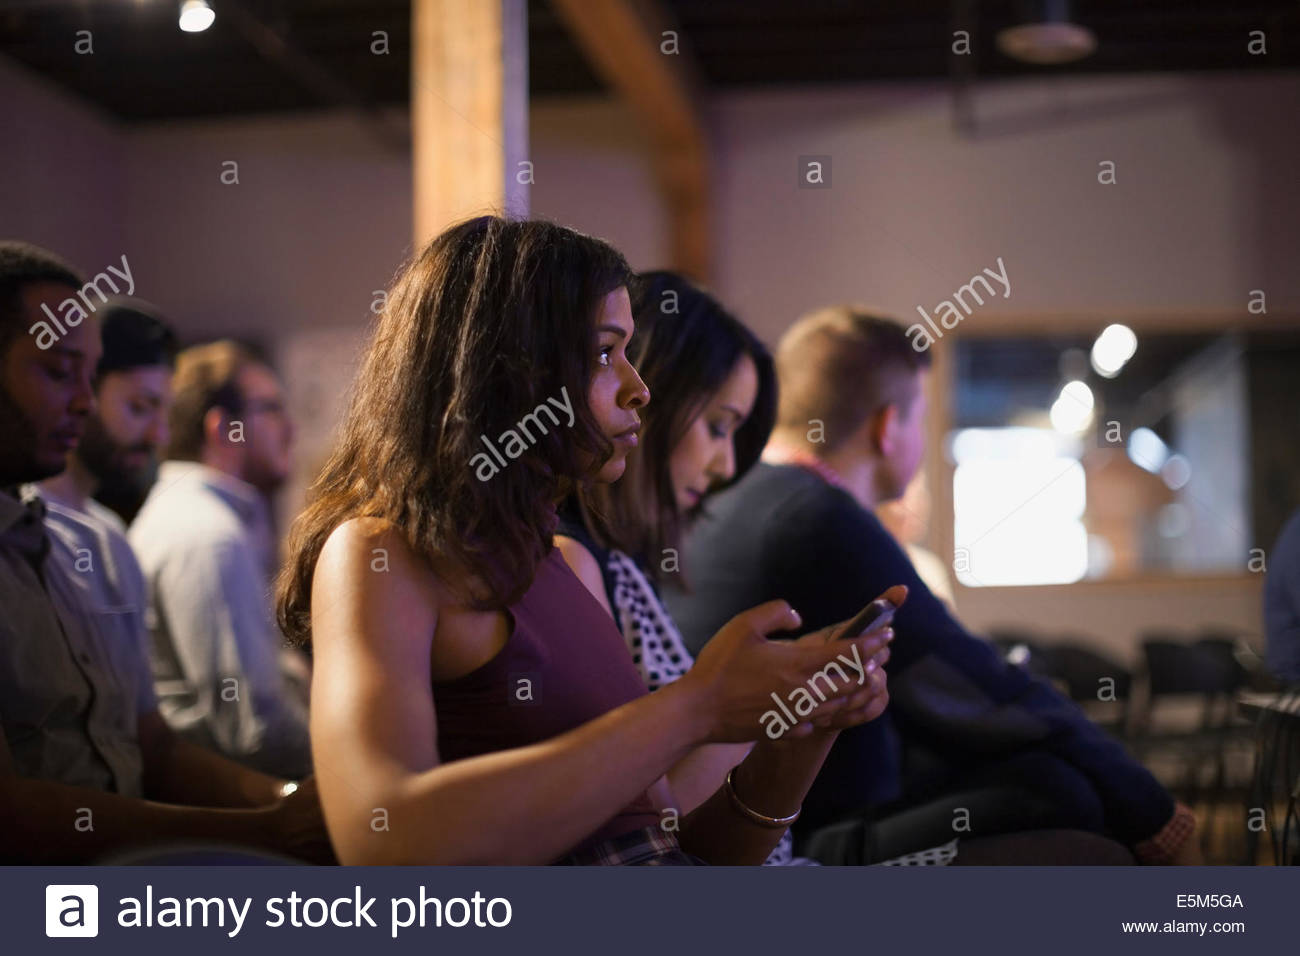 Woman in audience checking cell phone - Stock Image